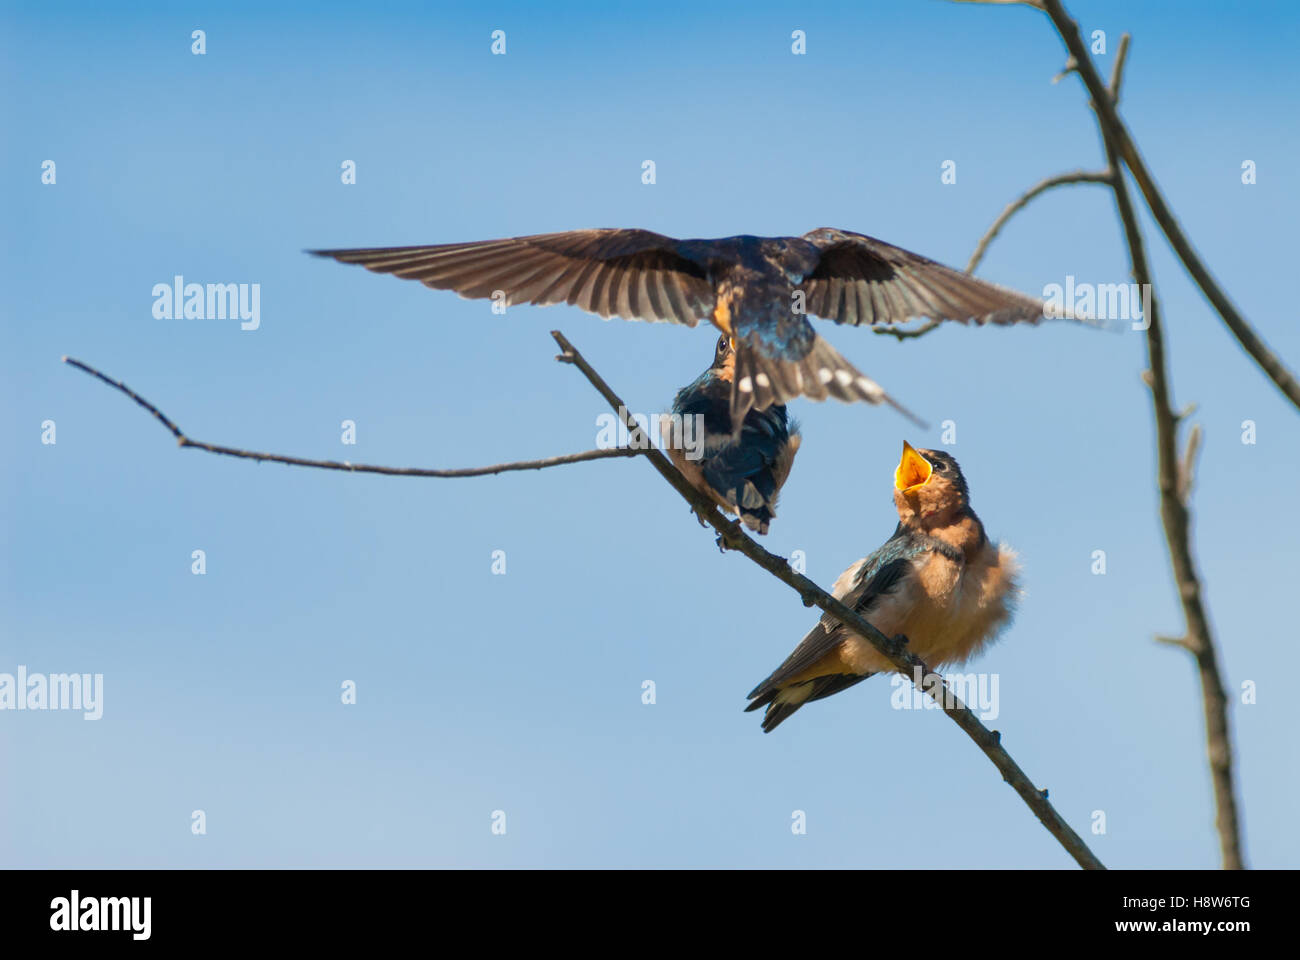 Barn swallow fledglings, Hirundo rustica, being fed by a parent in the Lois Hole Provincial Park, Alberta, Canada - Stock Image